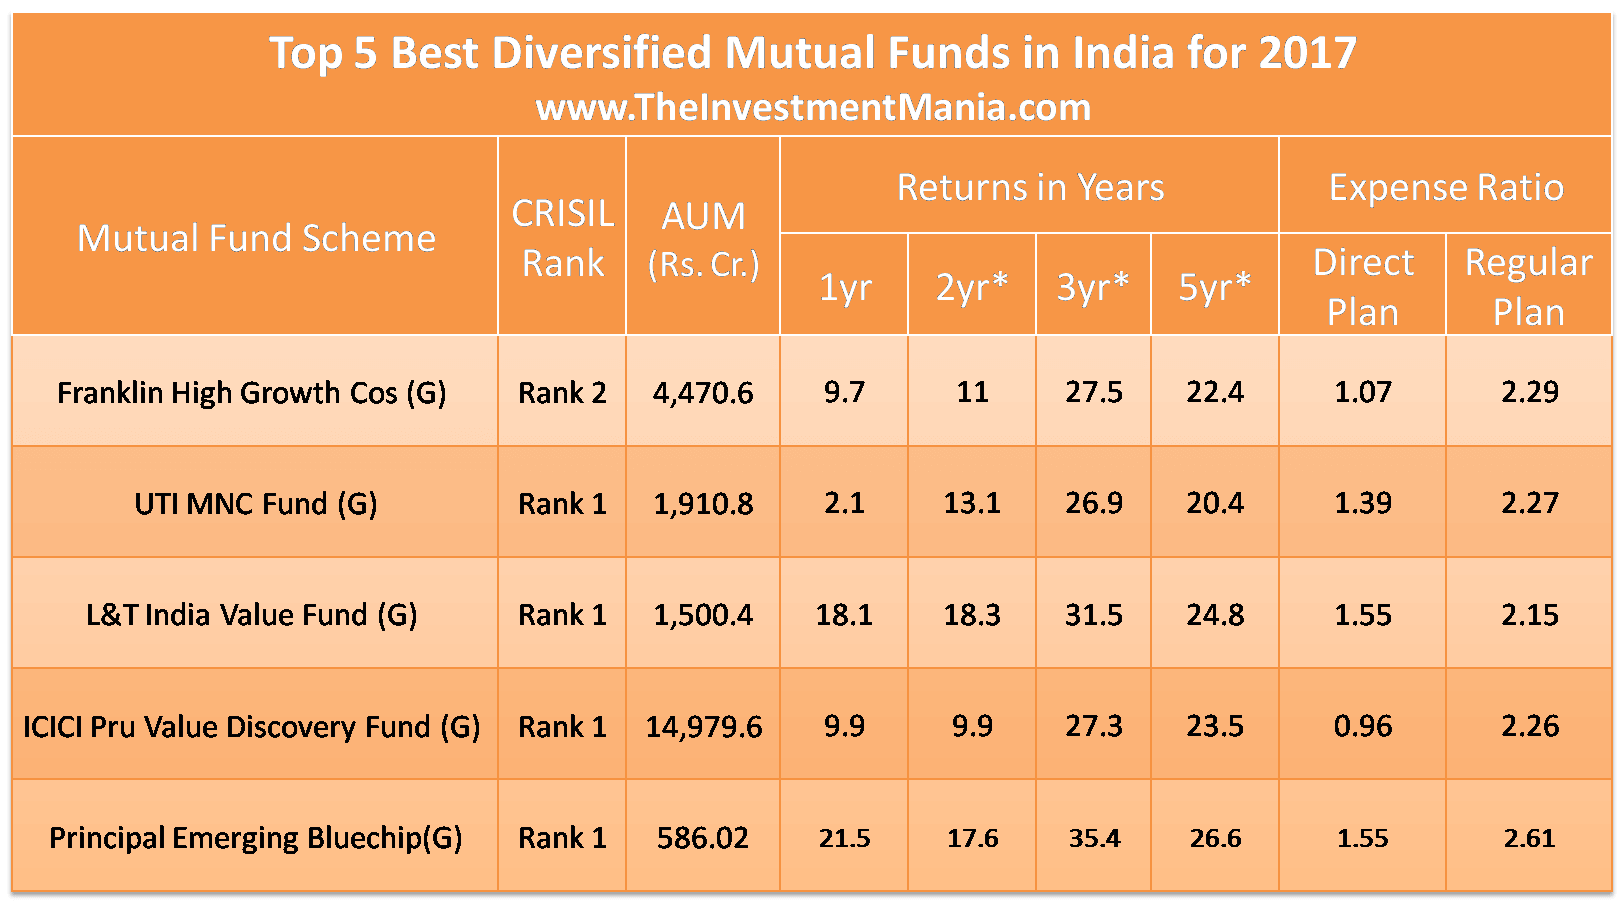 Multicap mutual funds in India 2017